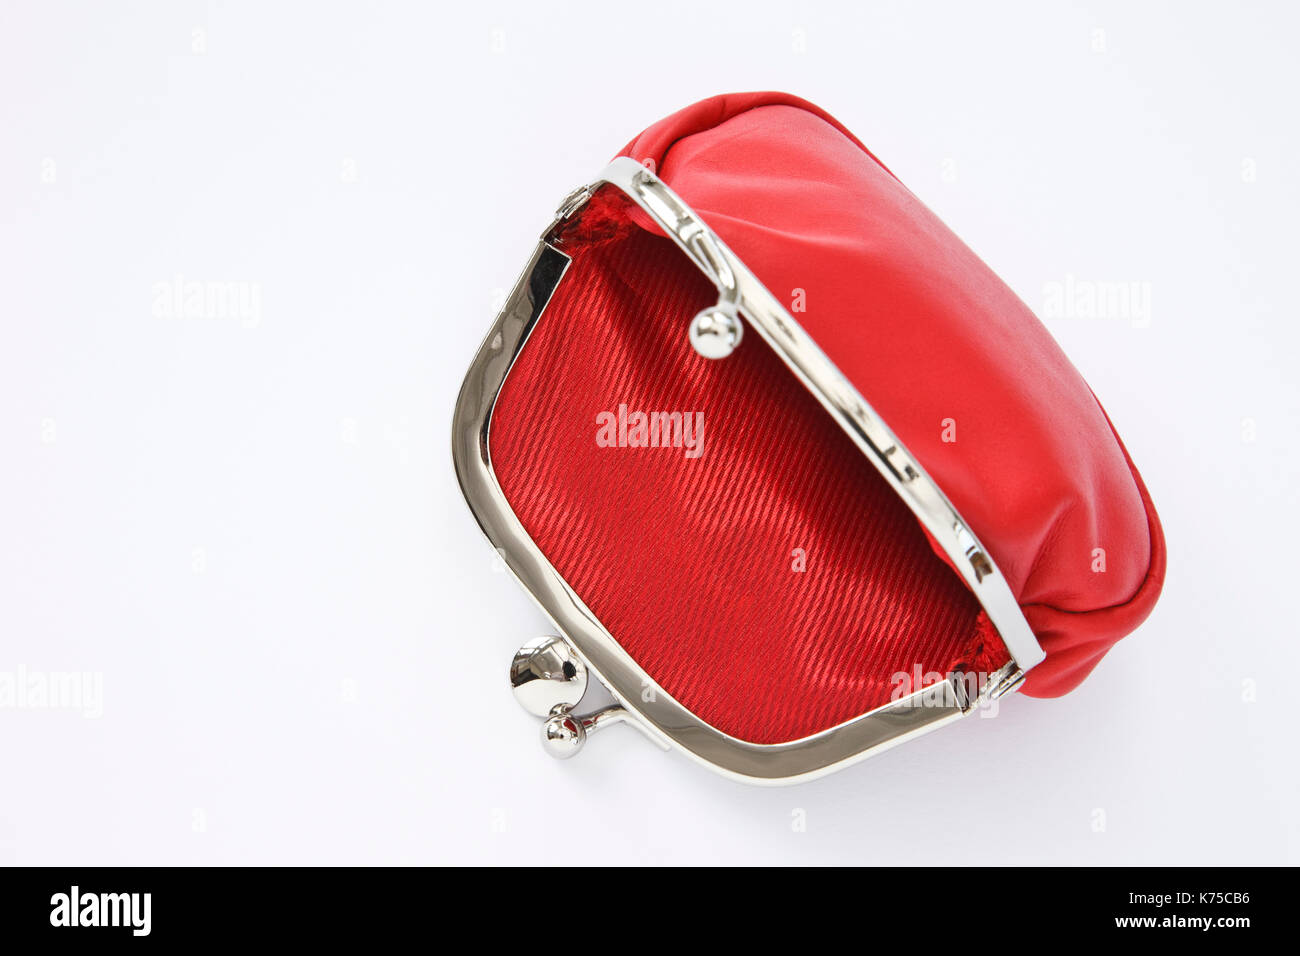 Empty red purse open to illustrate poverty and austerity concept. Isolated on a white background England, UK, Britain - Stock Image